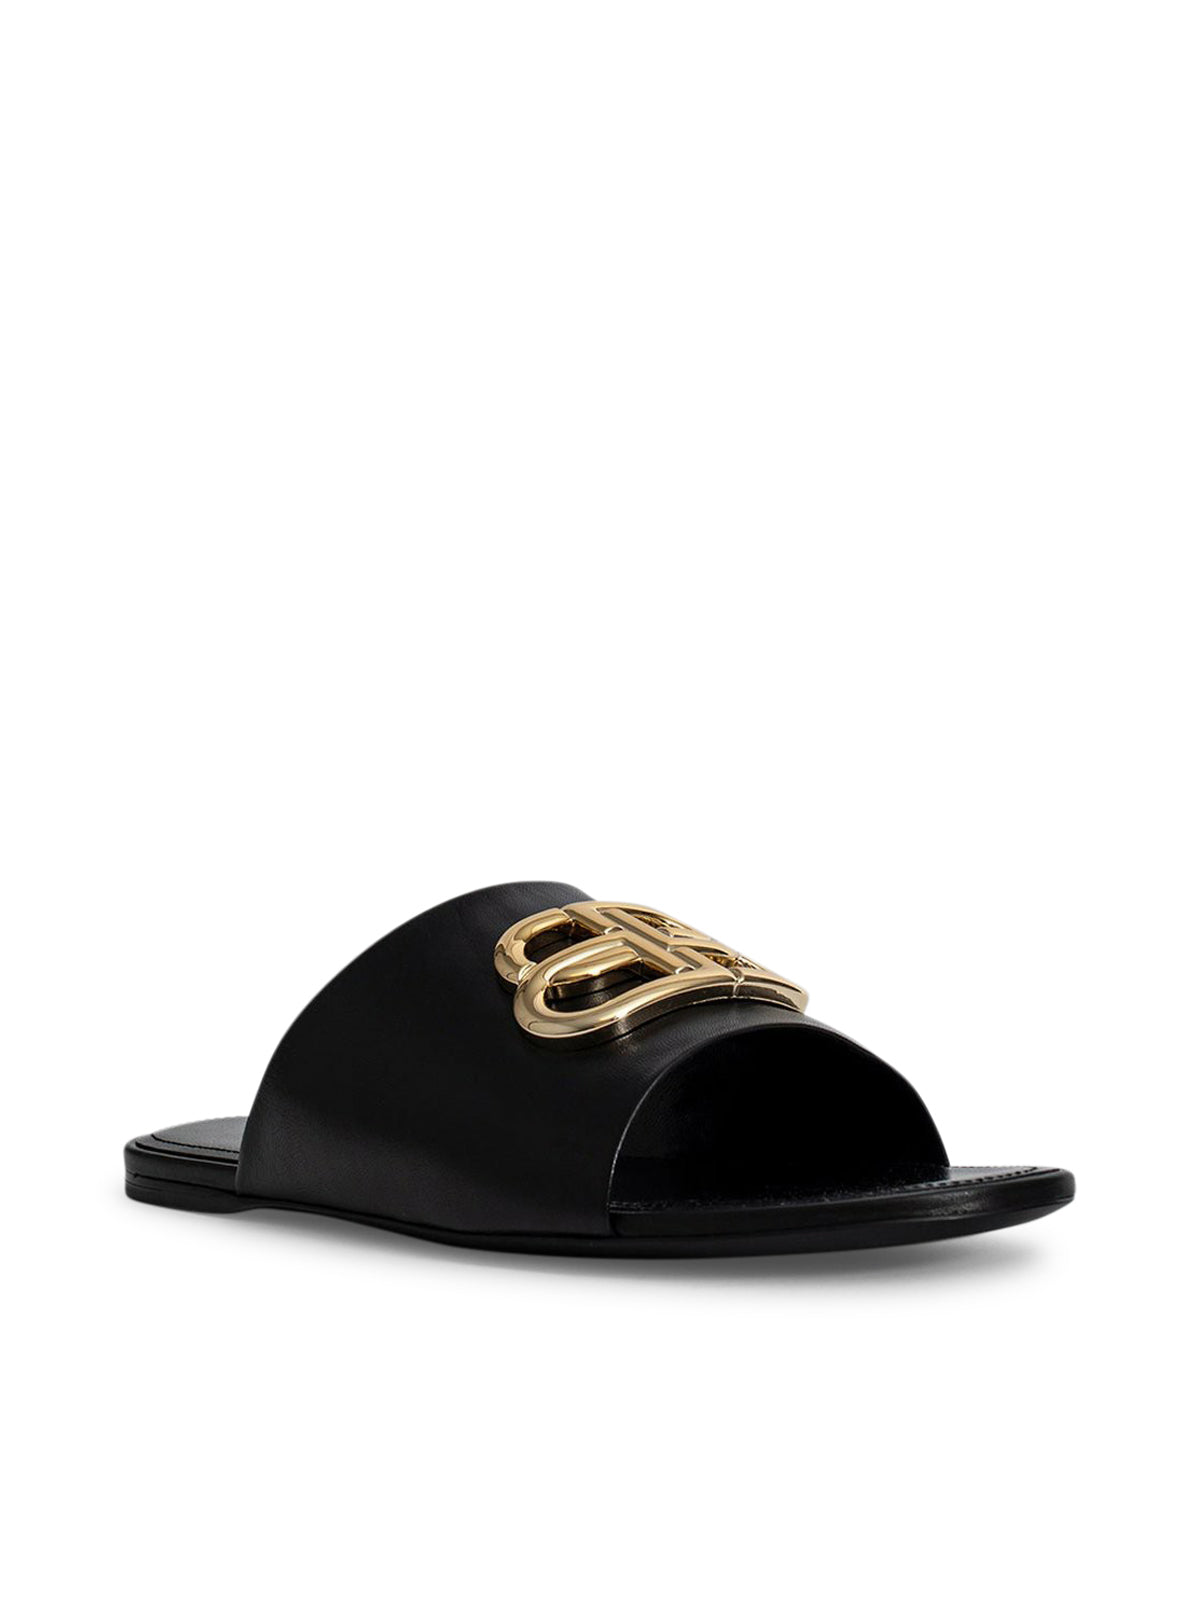 Black oval bb mule sandals